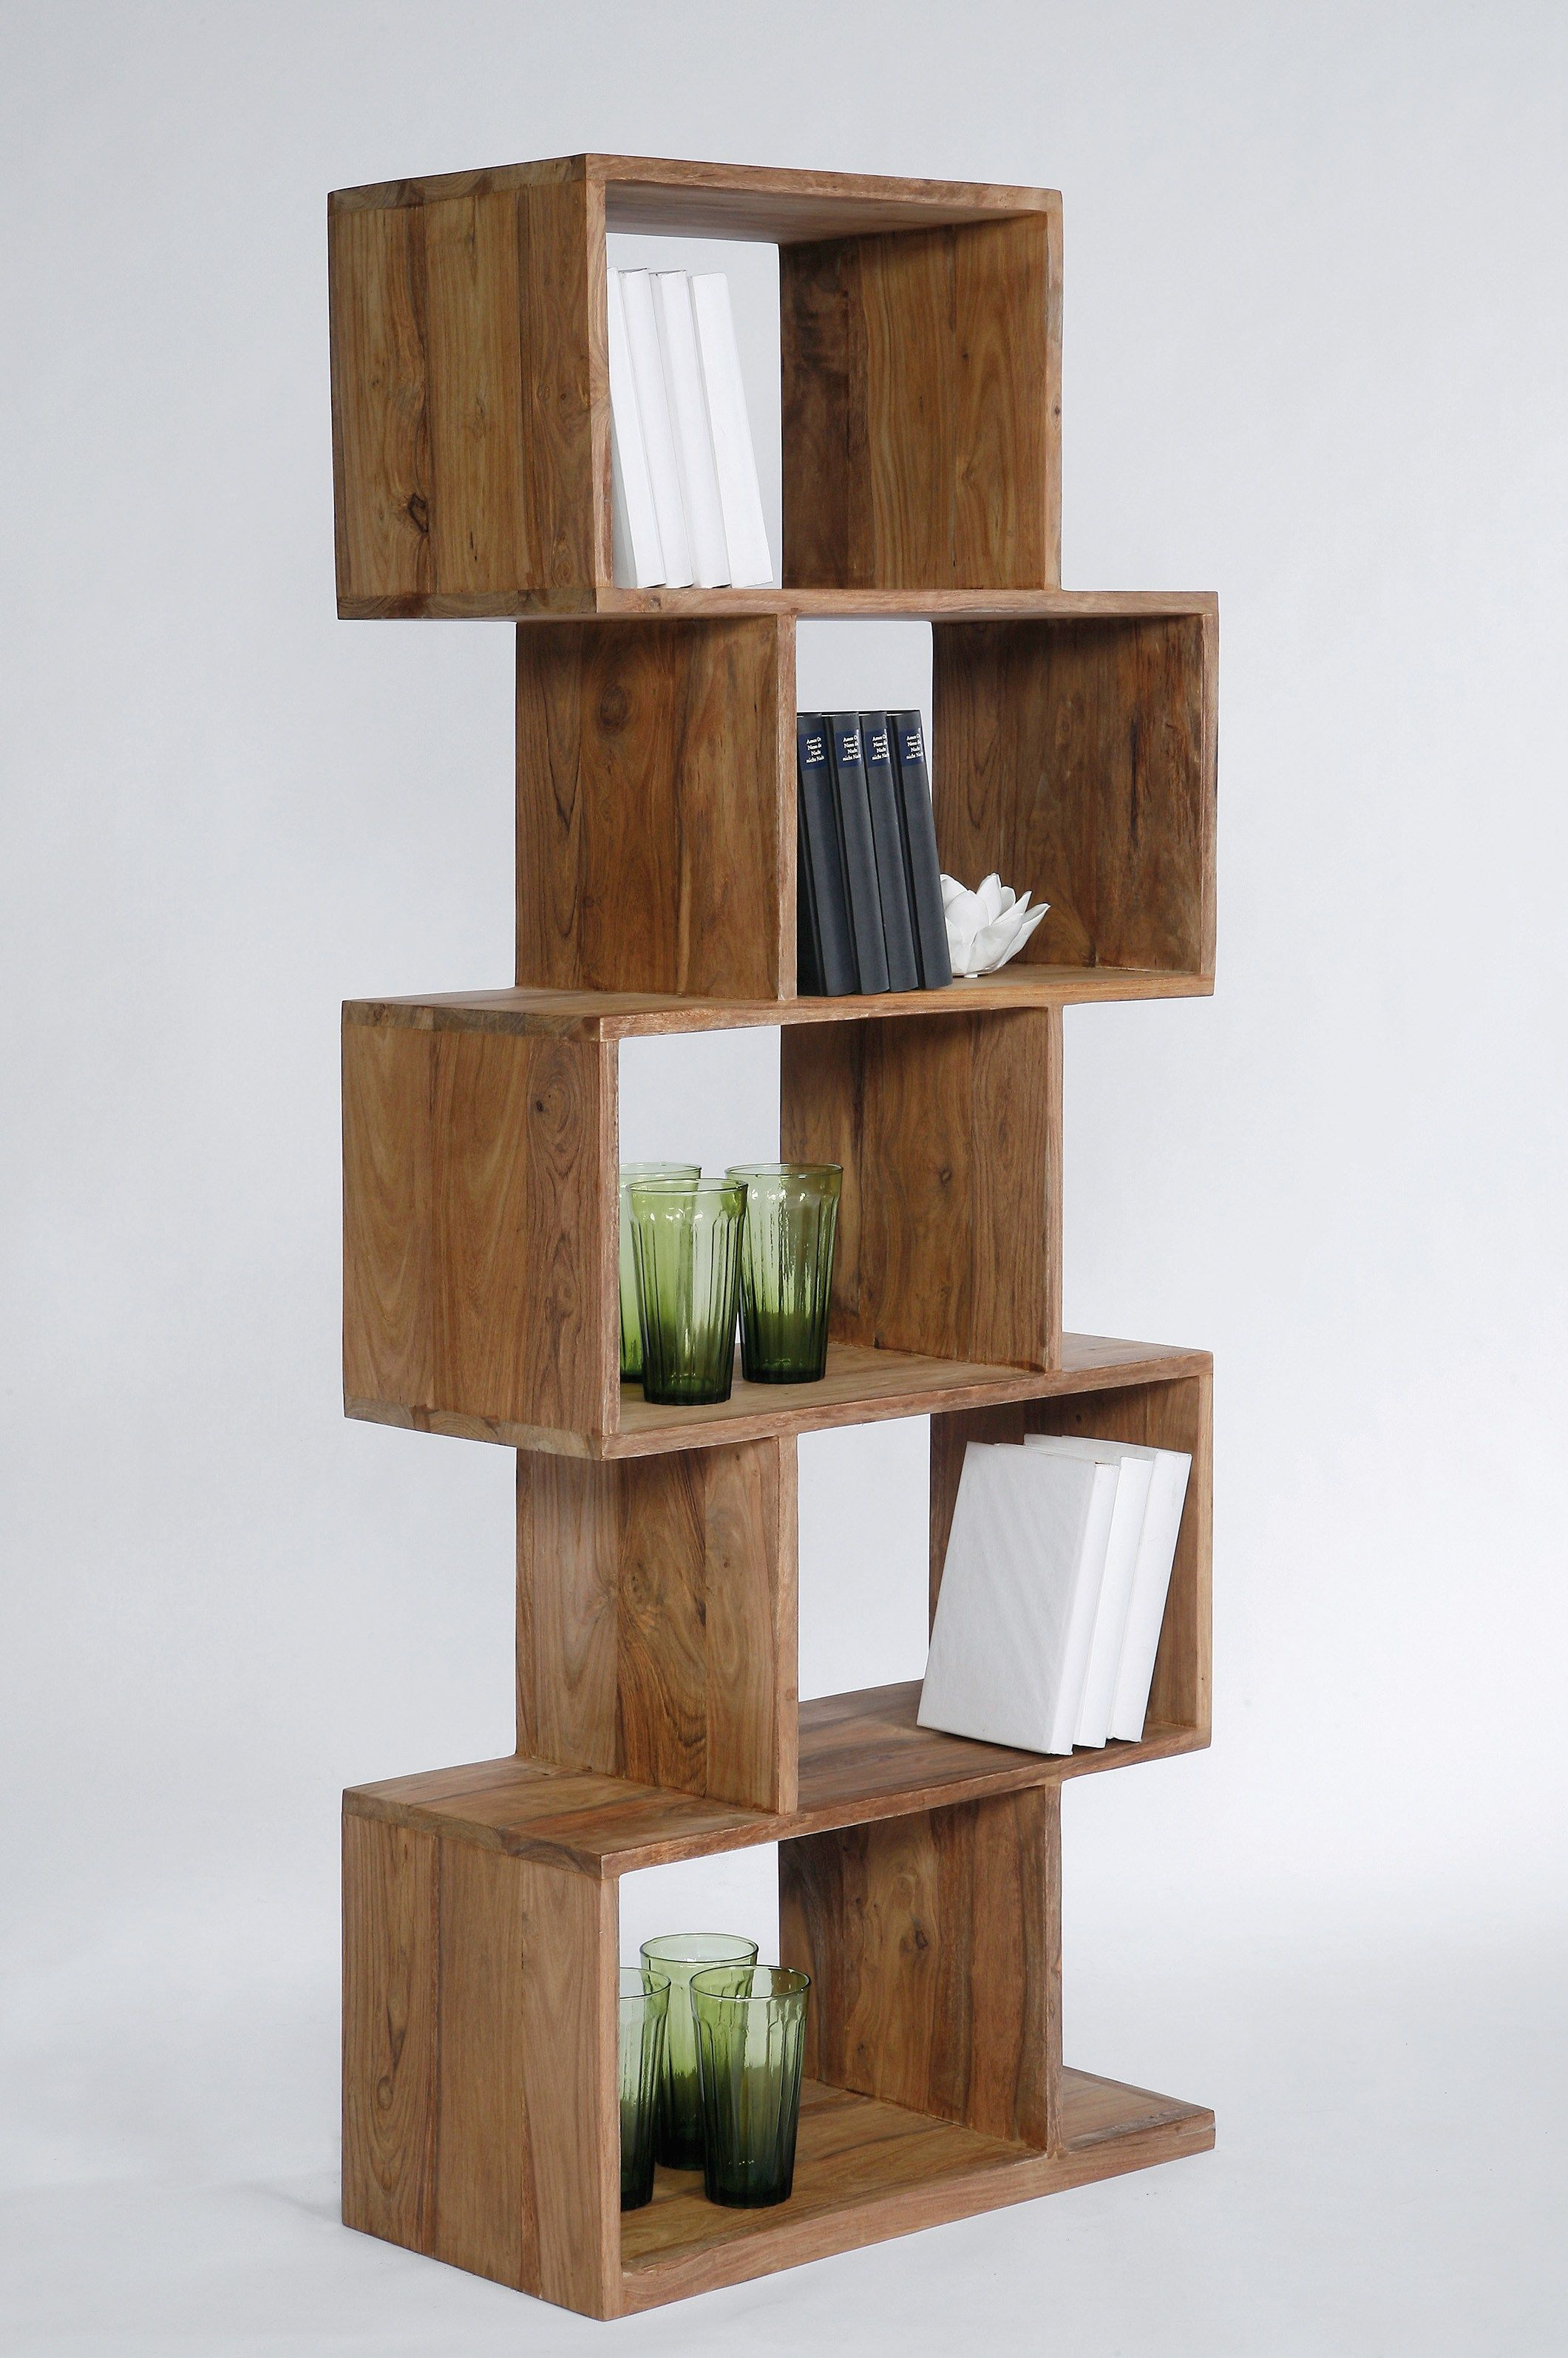 ideas shelving hudson image wall dvd australia media furniture ikea and storage spaces easy size lack bookshelf book way gloss solutions mount concealed mounting perfect pal high curved brackets white like shelf installing terrific of homemade garage full purchase for floating to console shelves small